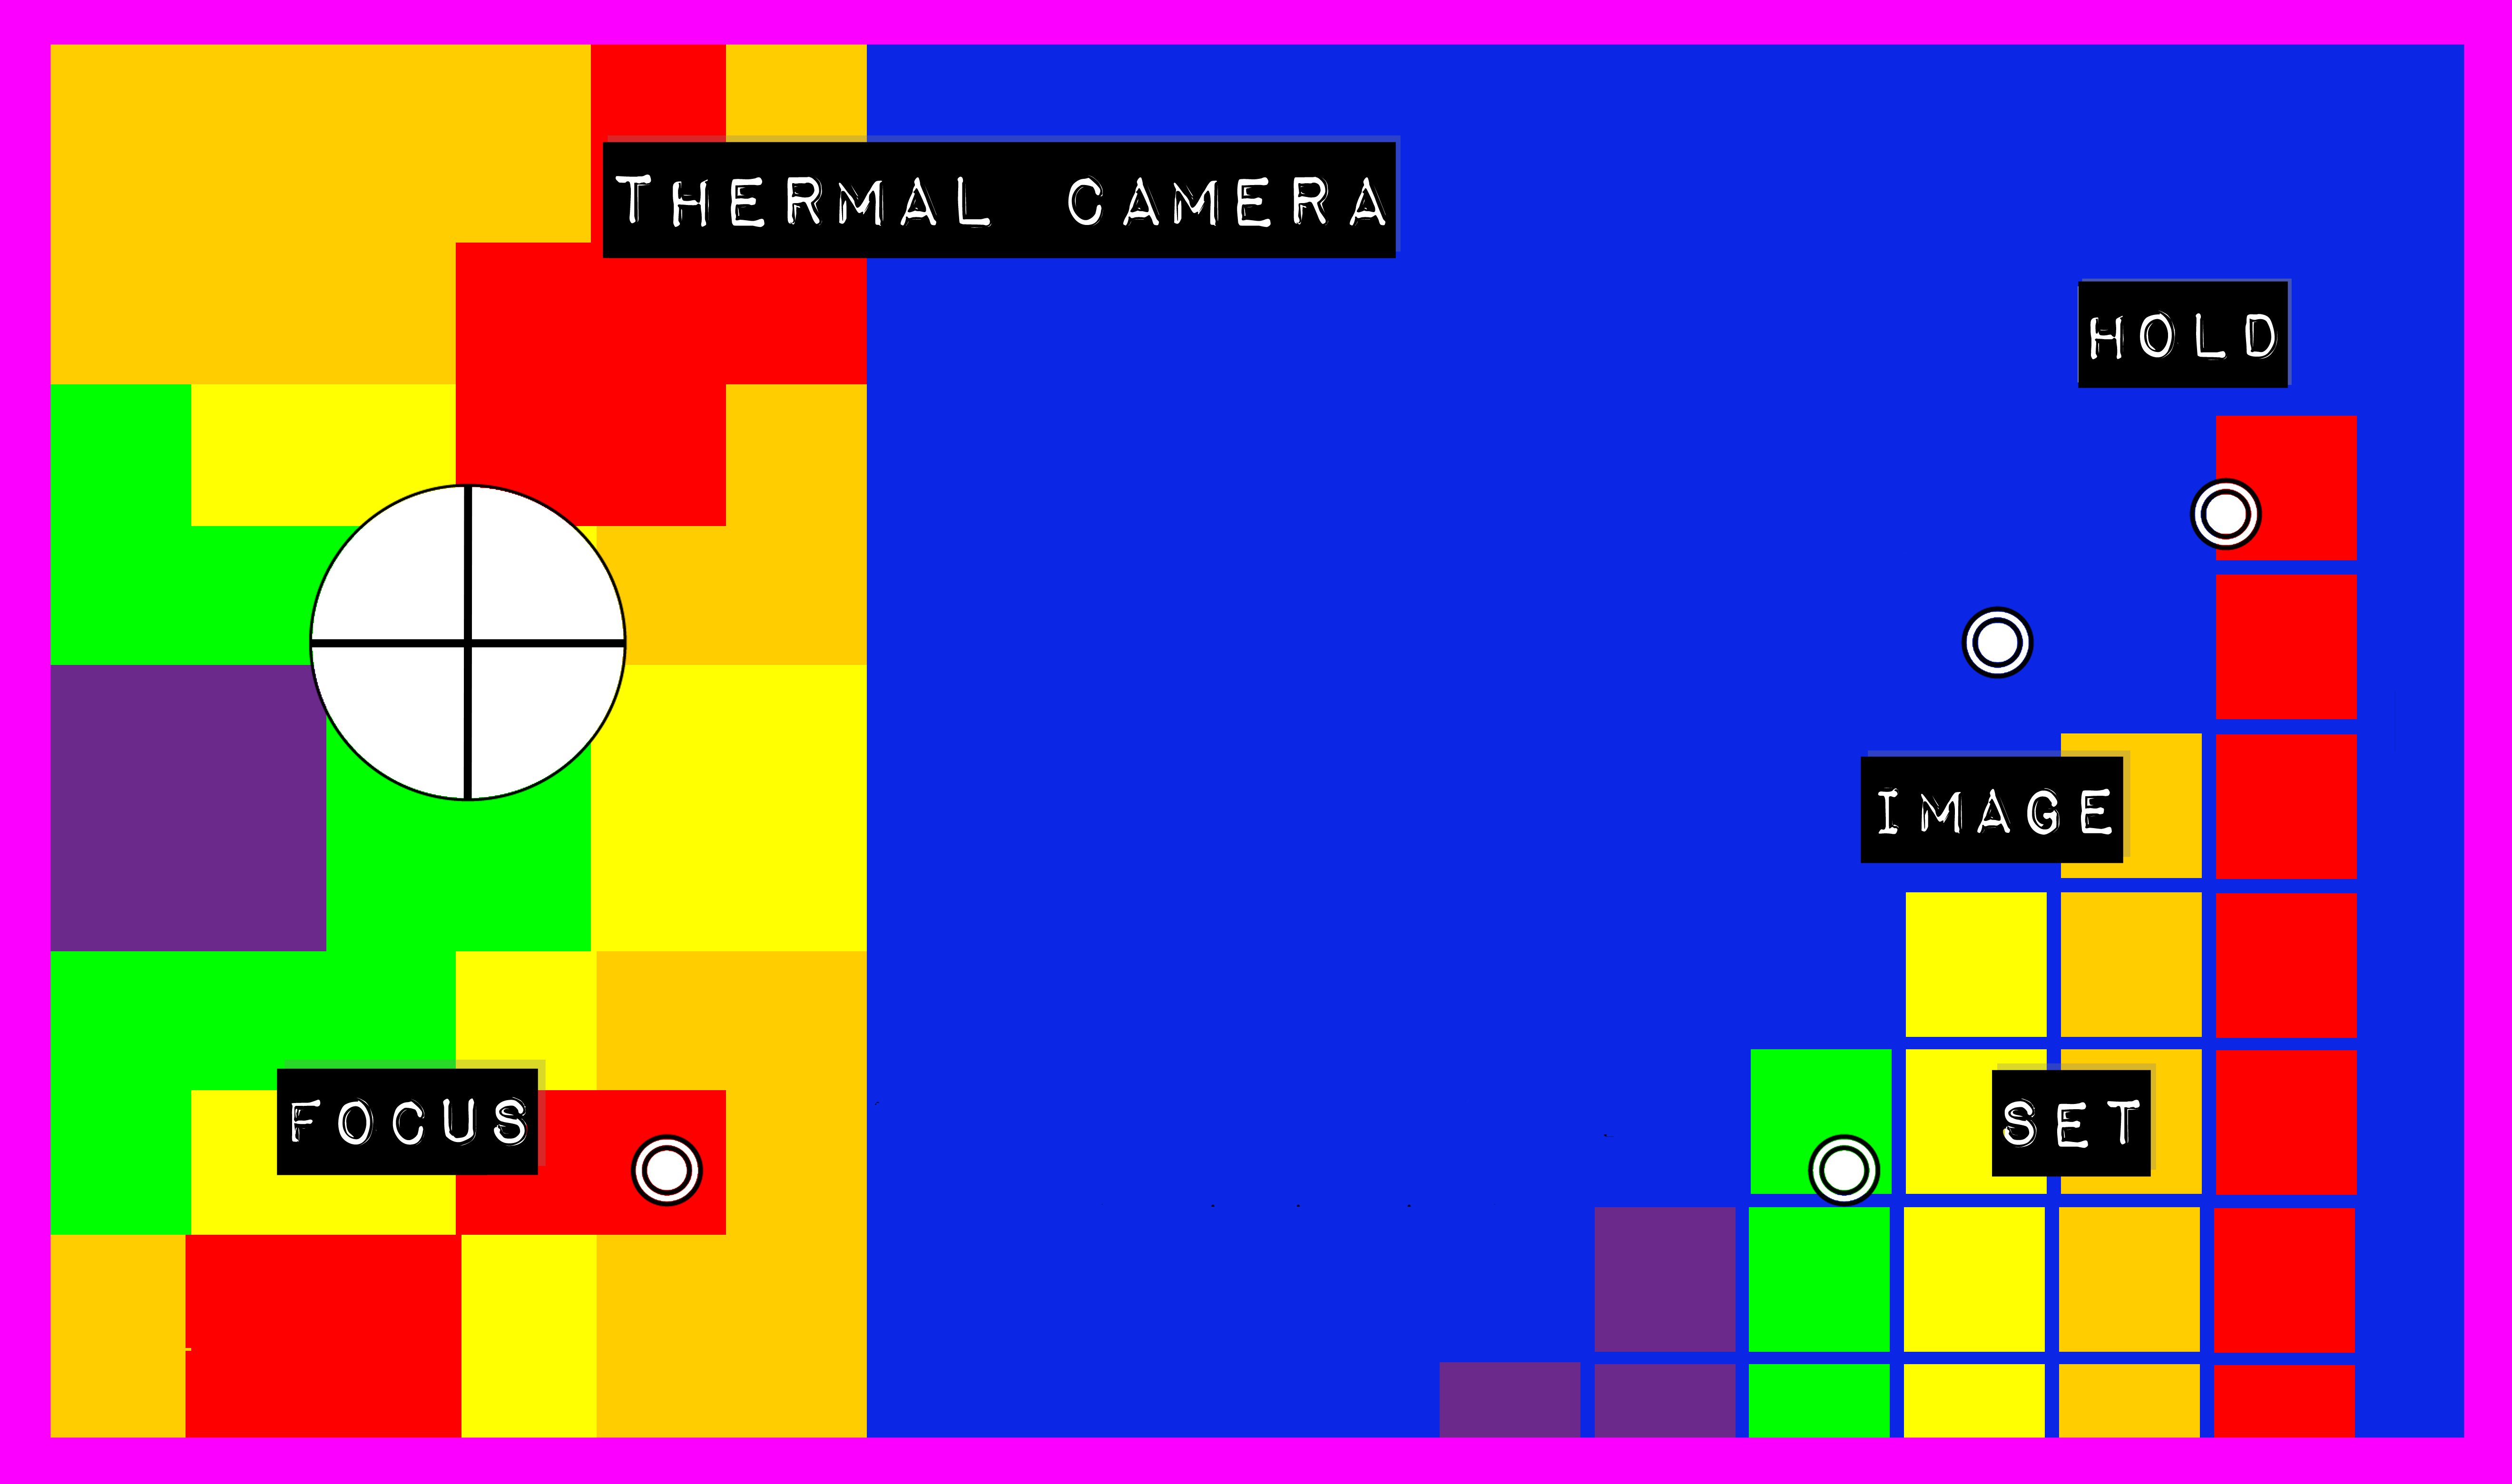 temperature___humidity_Thermal_Cam_panel_label_sticker.jpg